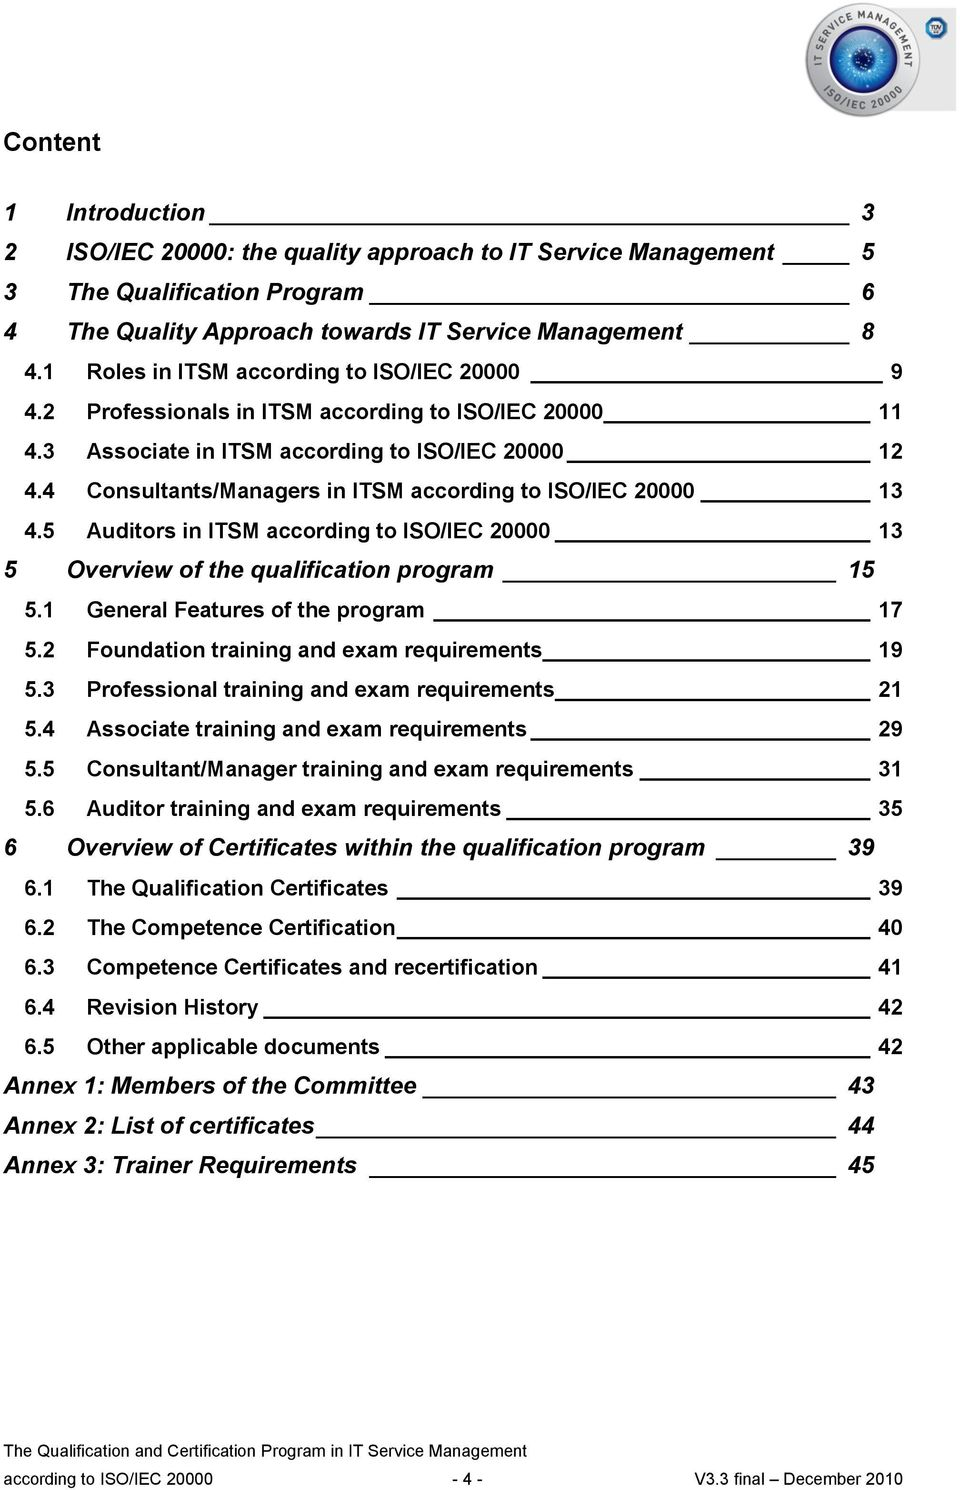 4 Consultants/Managers in ITSM according to ISO/IEC 20000 13 4.5 Auditors in ITSM according to ISO/IEC 20000 13 5 Overview of the qualification program 15 5.1 General Features of the program 17 5.